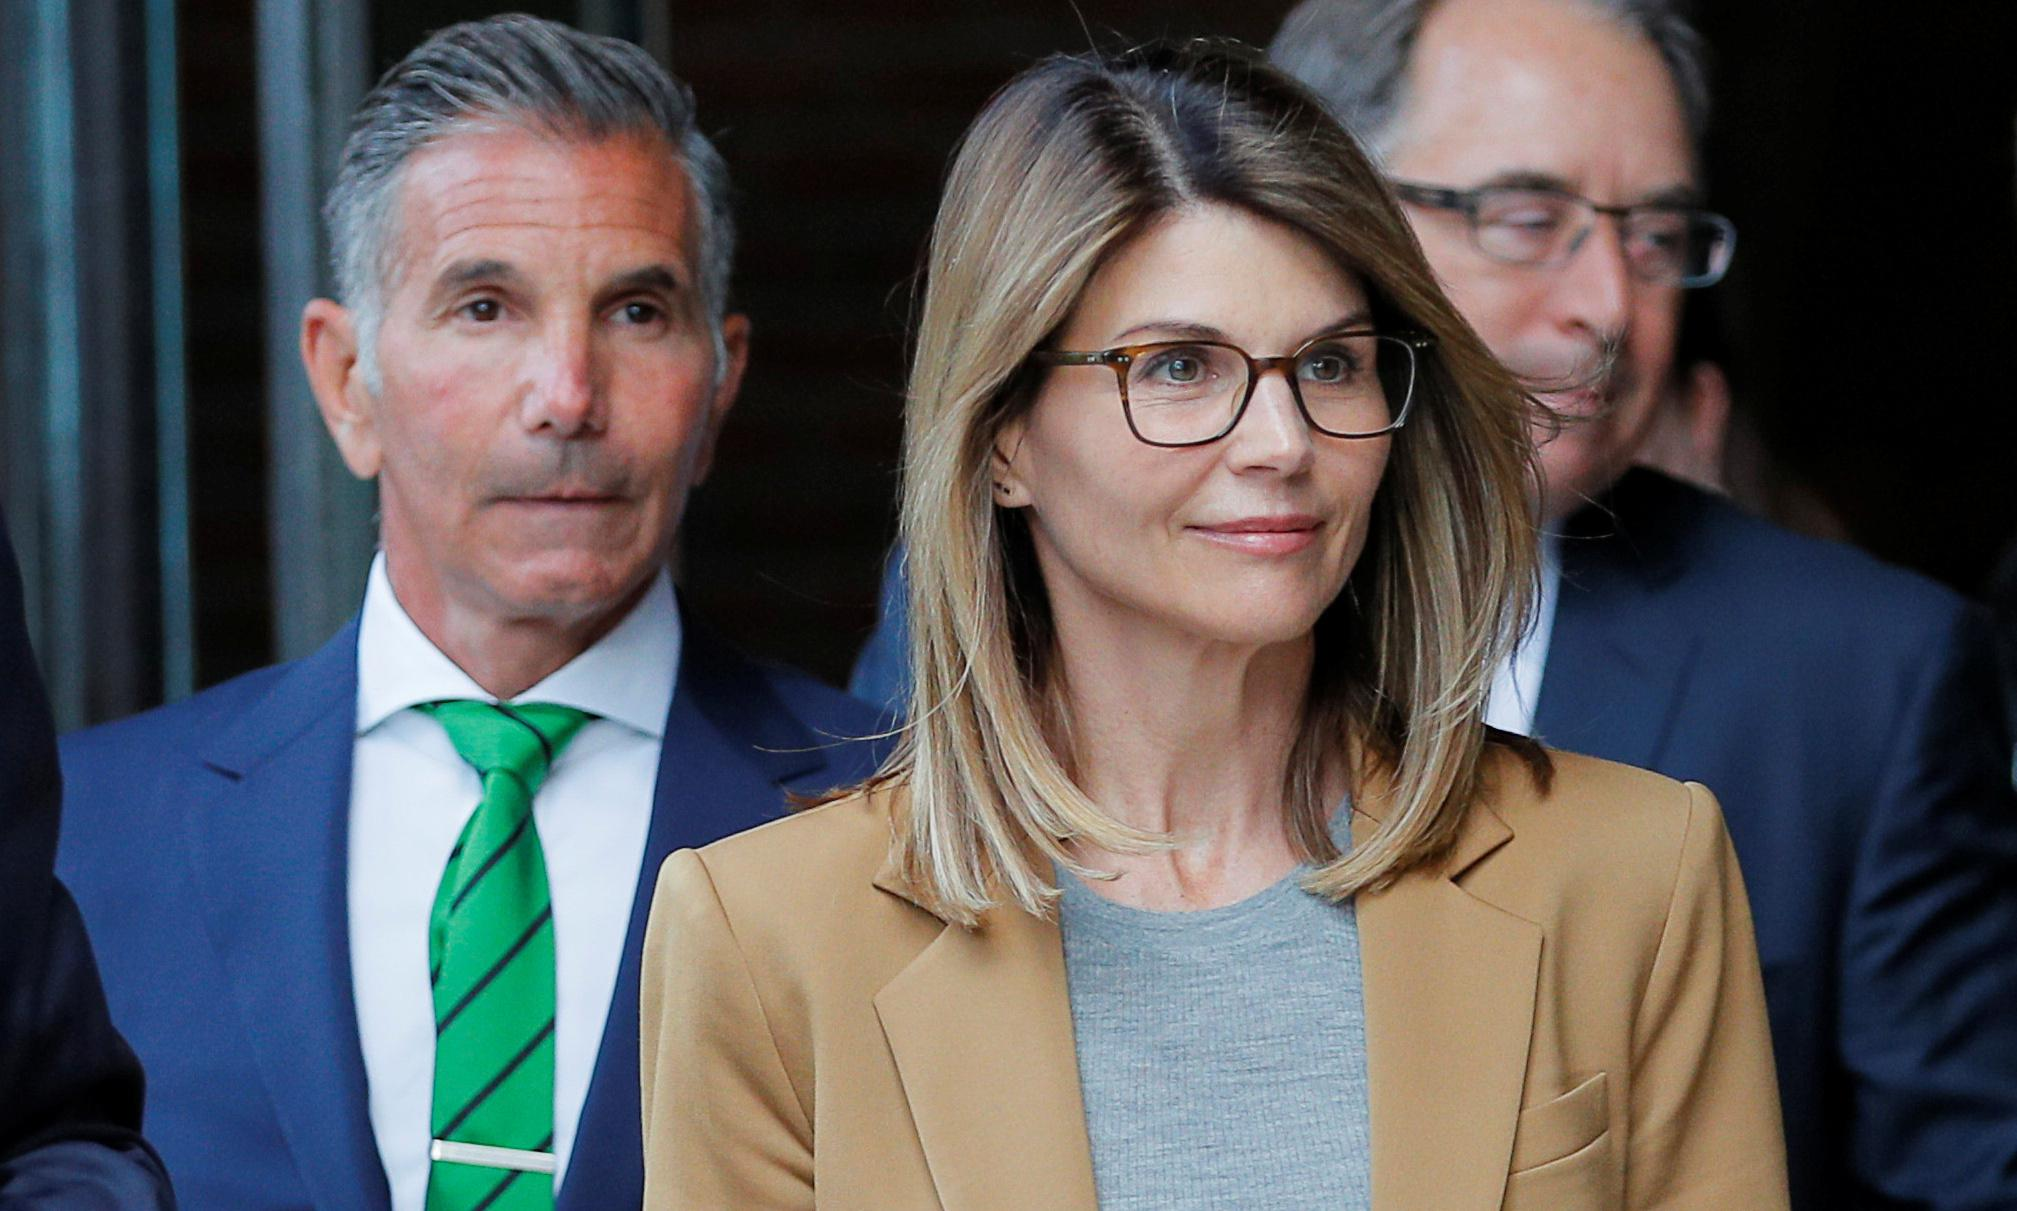 Lori Loughlin to plead not guilty in college bribery case